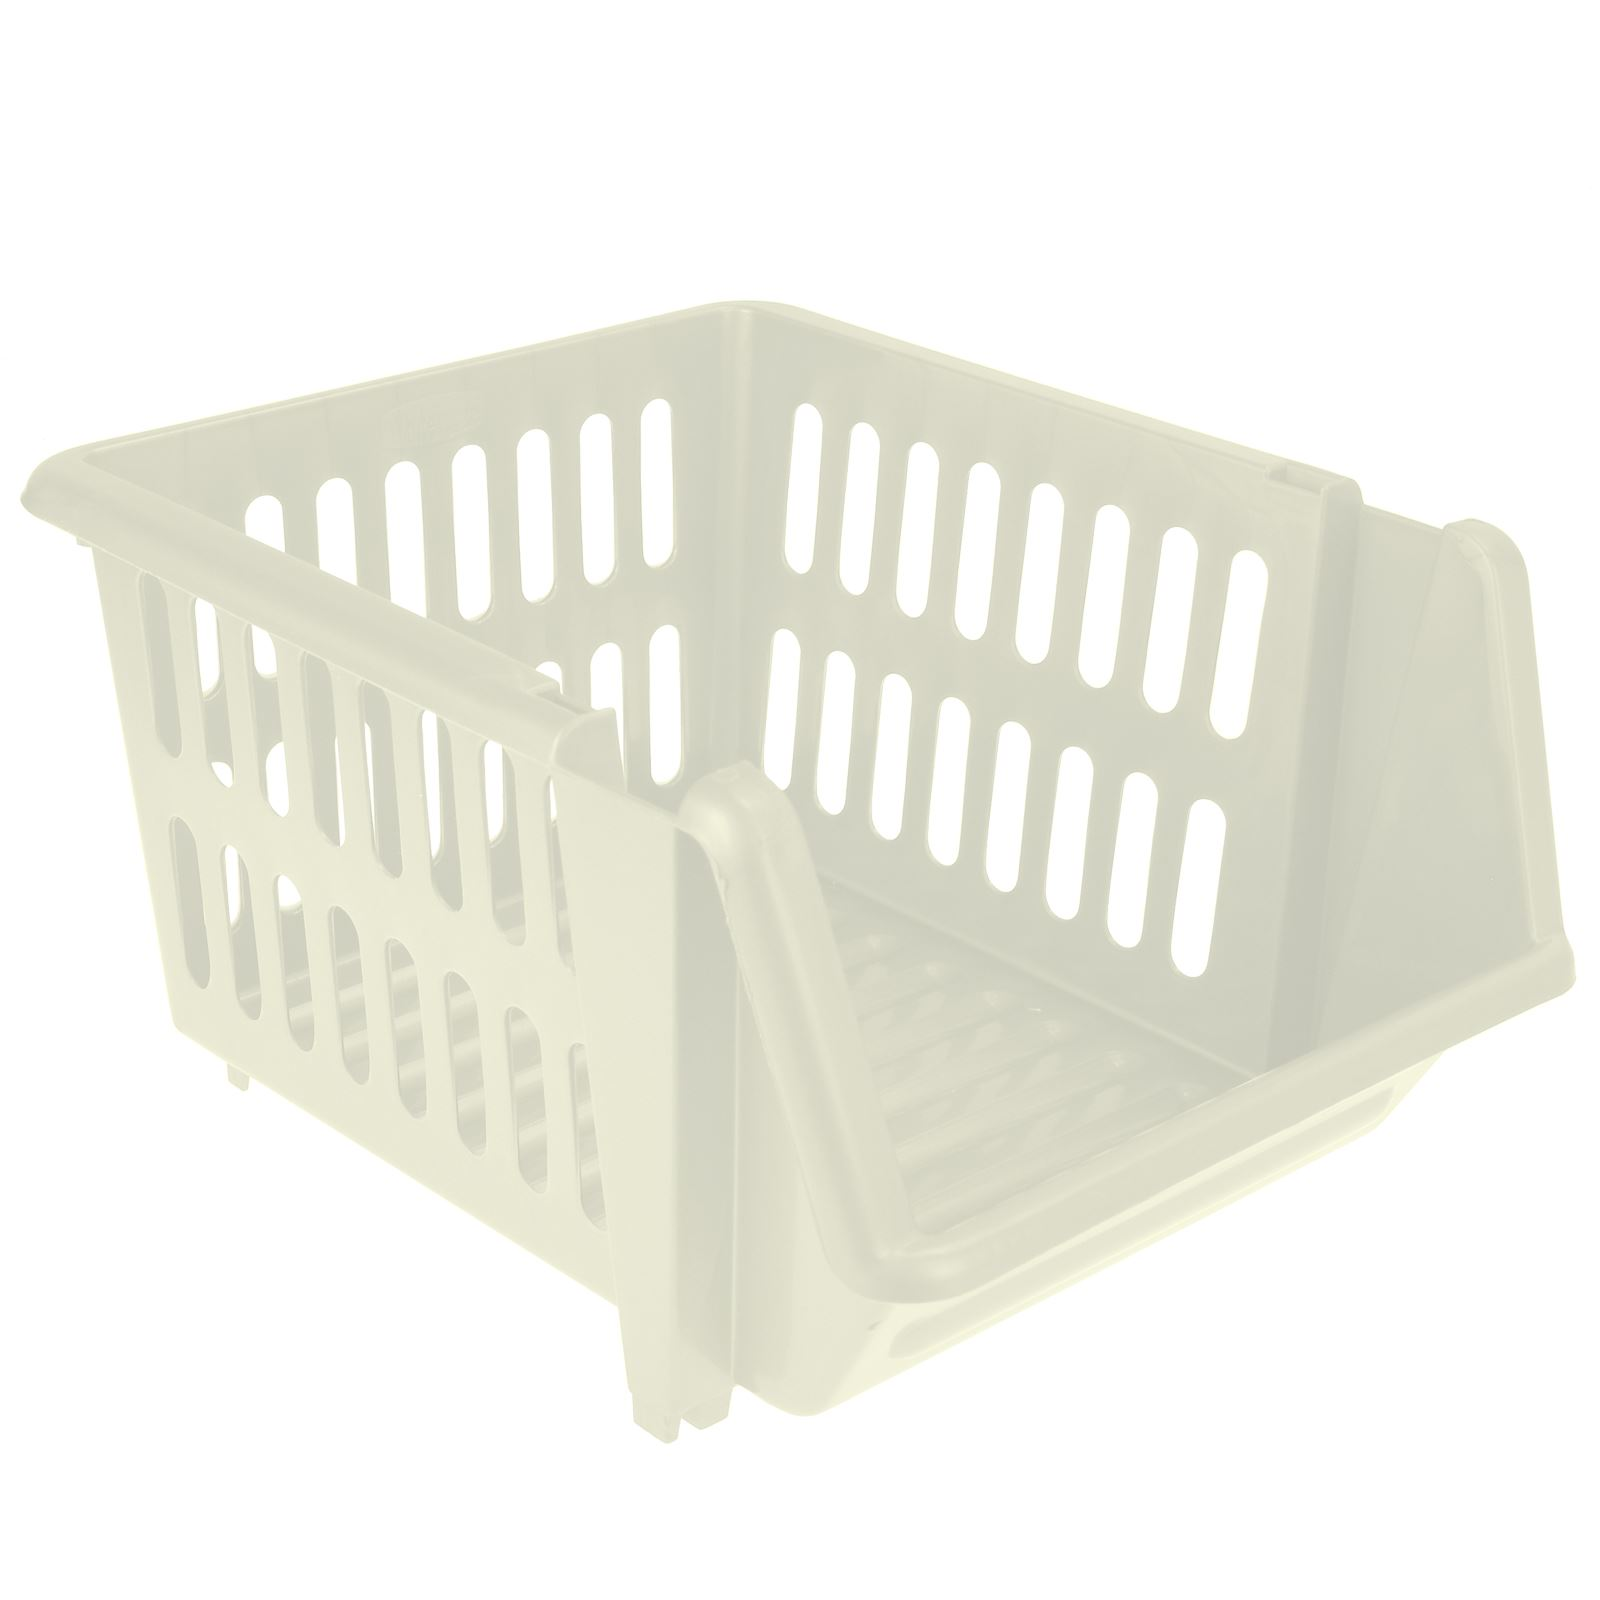 3-Tier-Plastic-Stacking-Basket-Set-Kitchen-Office-Storage-Rack-Stackable-Boxes thumbnail 5